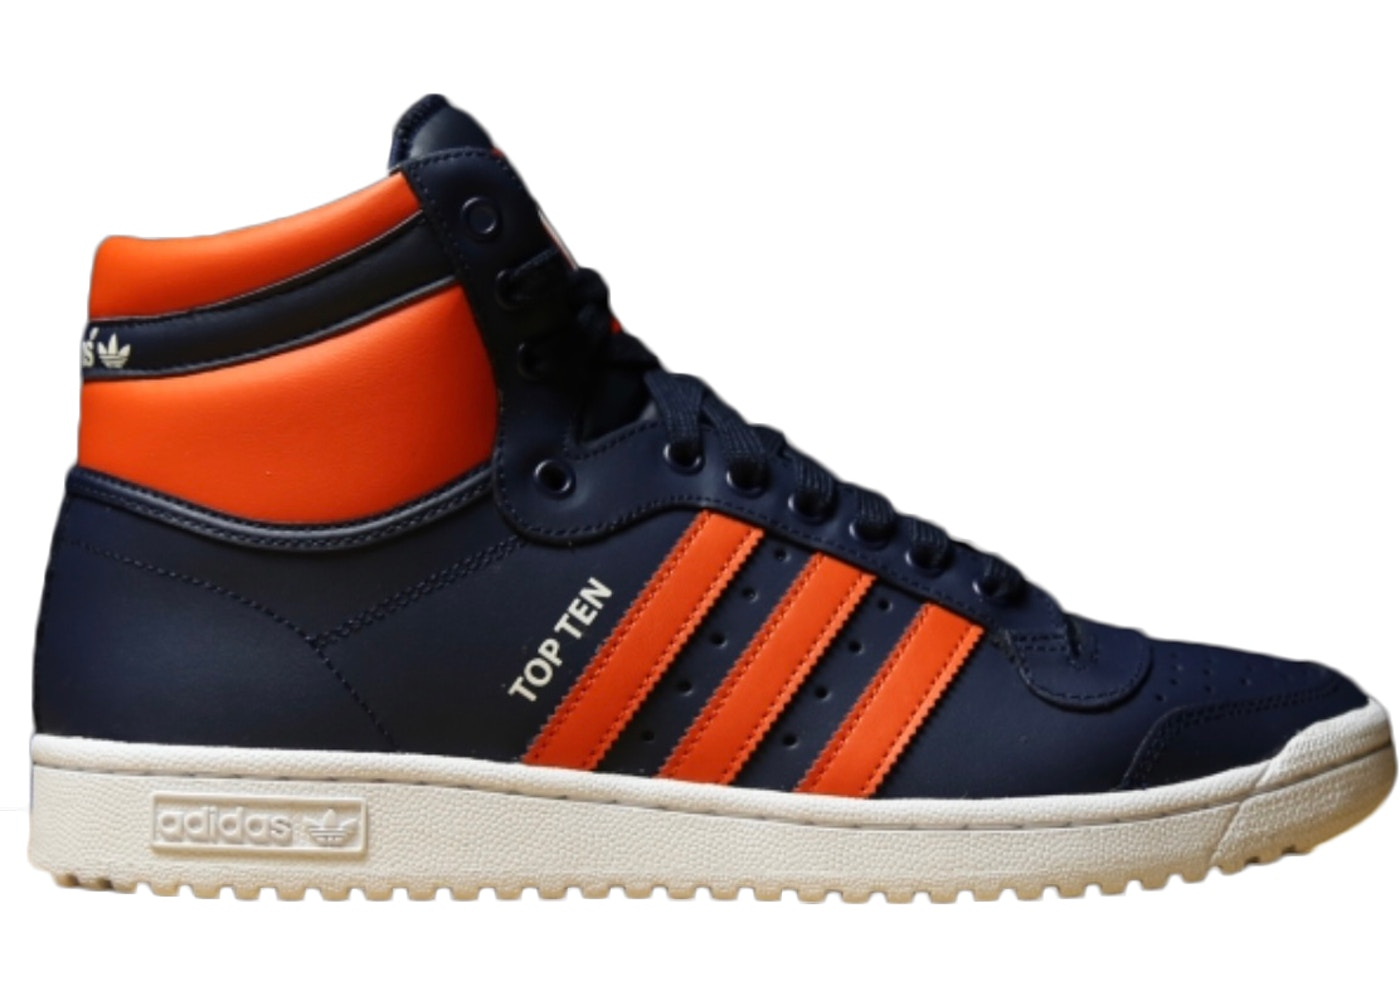 super popular efb7f f938e adidas Top Ten Hi Triple Crown - C77750